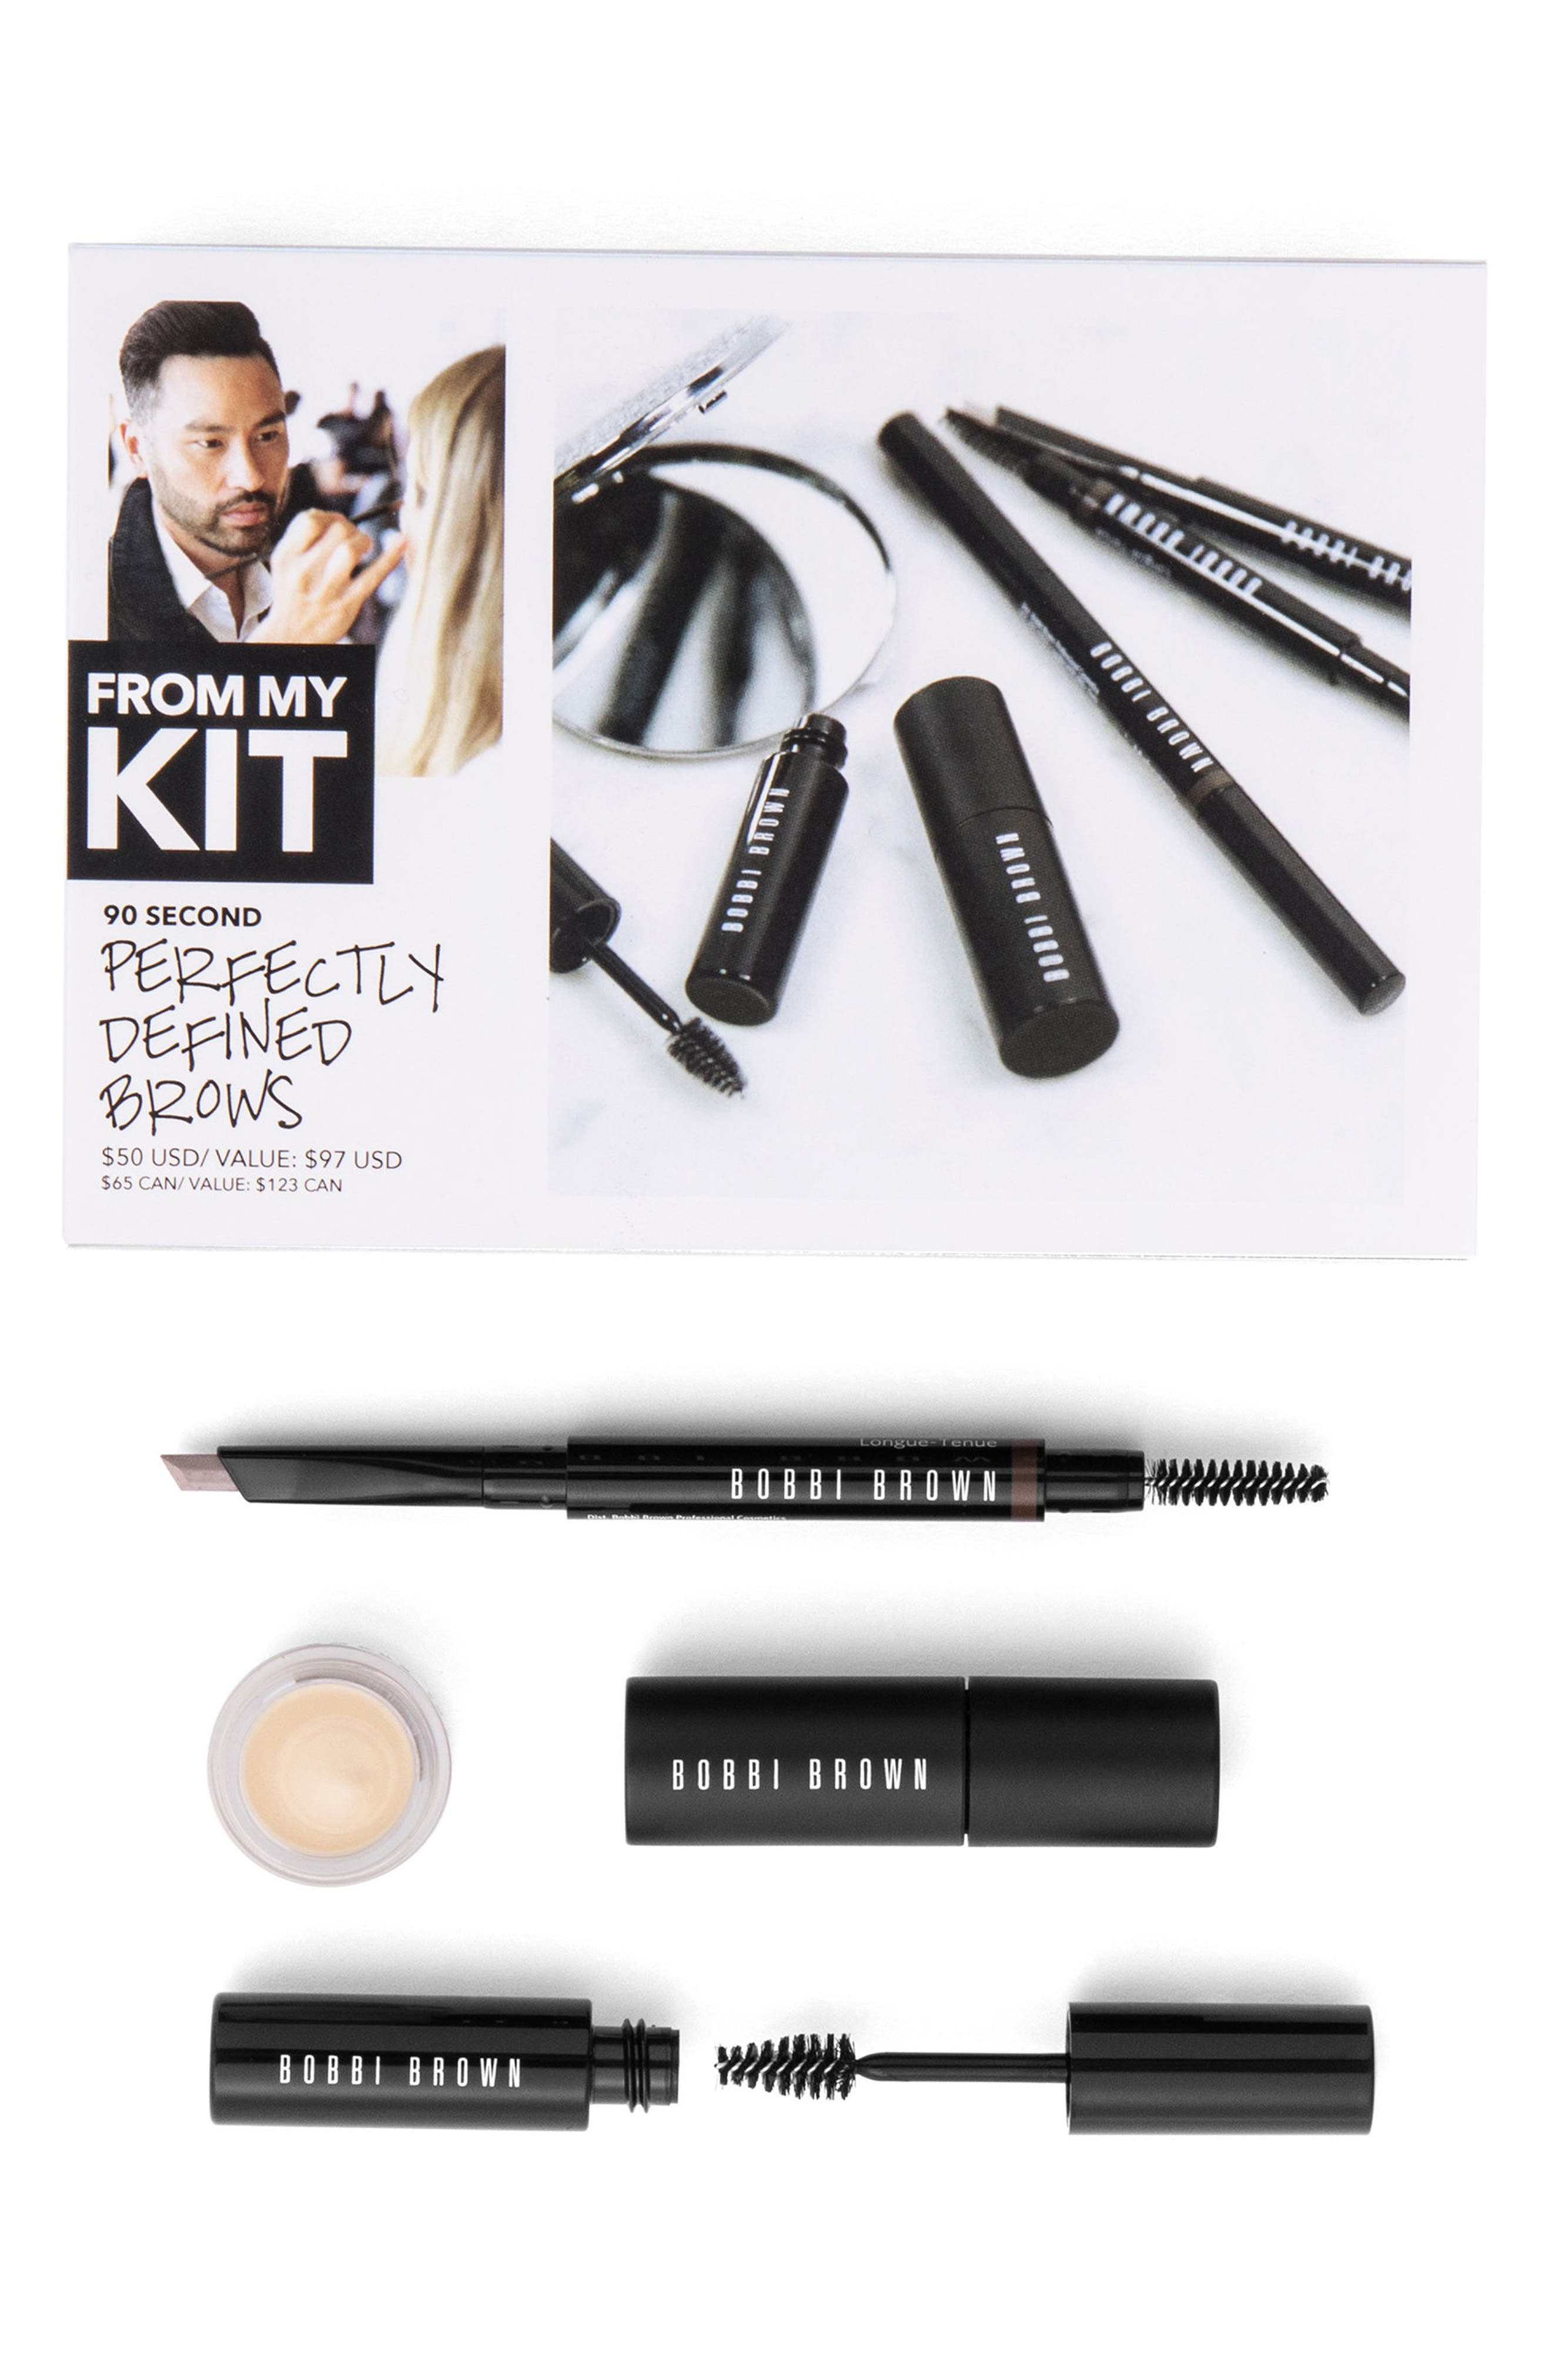 Alternate Image 1 Selected - Bobbi Brown 90 Second Perfectly Defined Brows Kit ($97 Value)